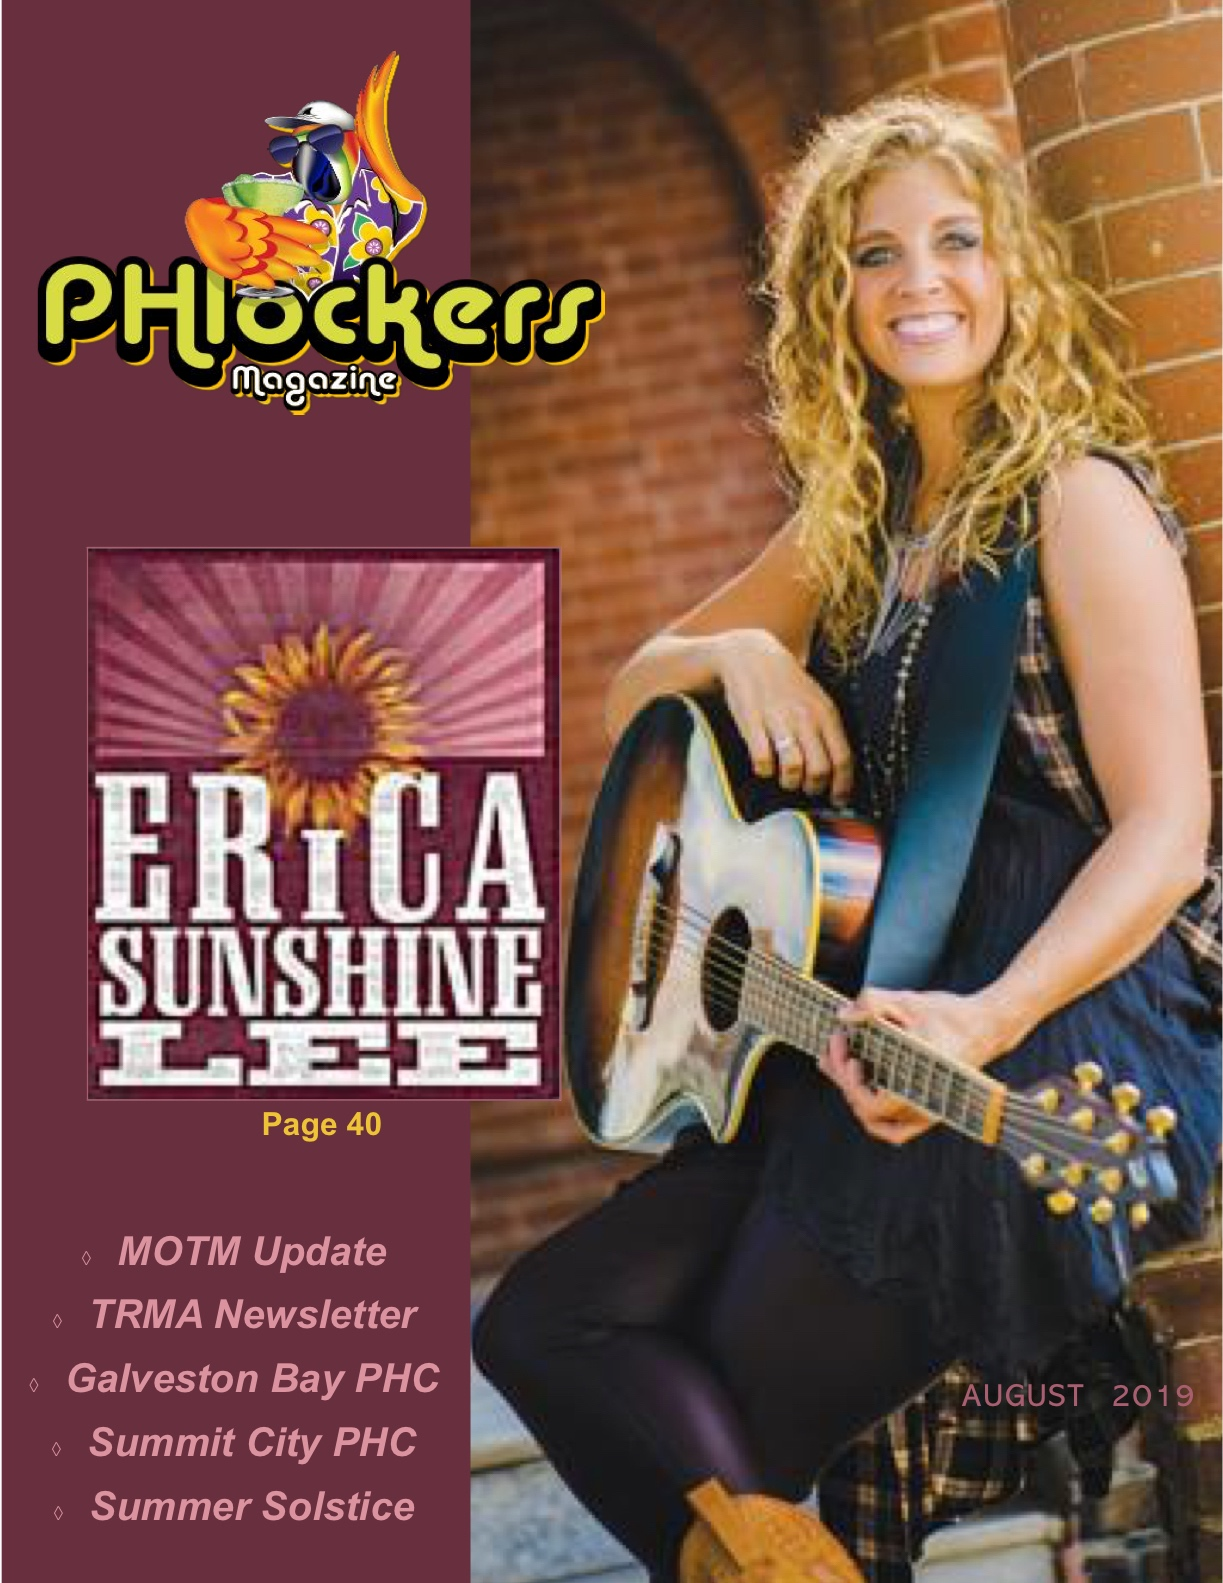 Read the up close and personal interview and learn about Erica Sunshine Lee, the Georgia Gypsy on this month's edition of PHLOCKERS MAGAZINE.  Aug. 2019